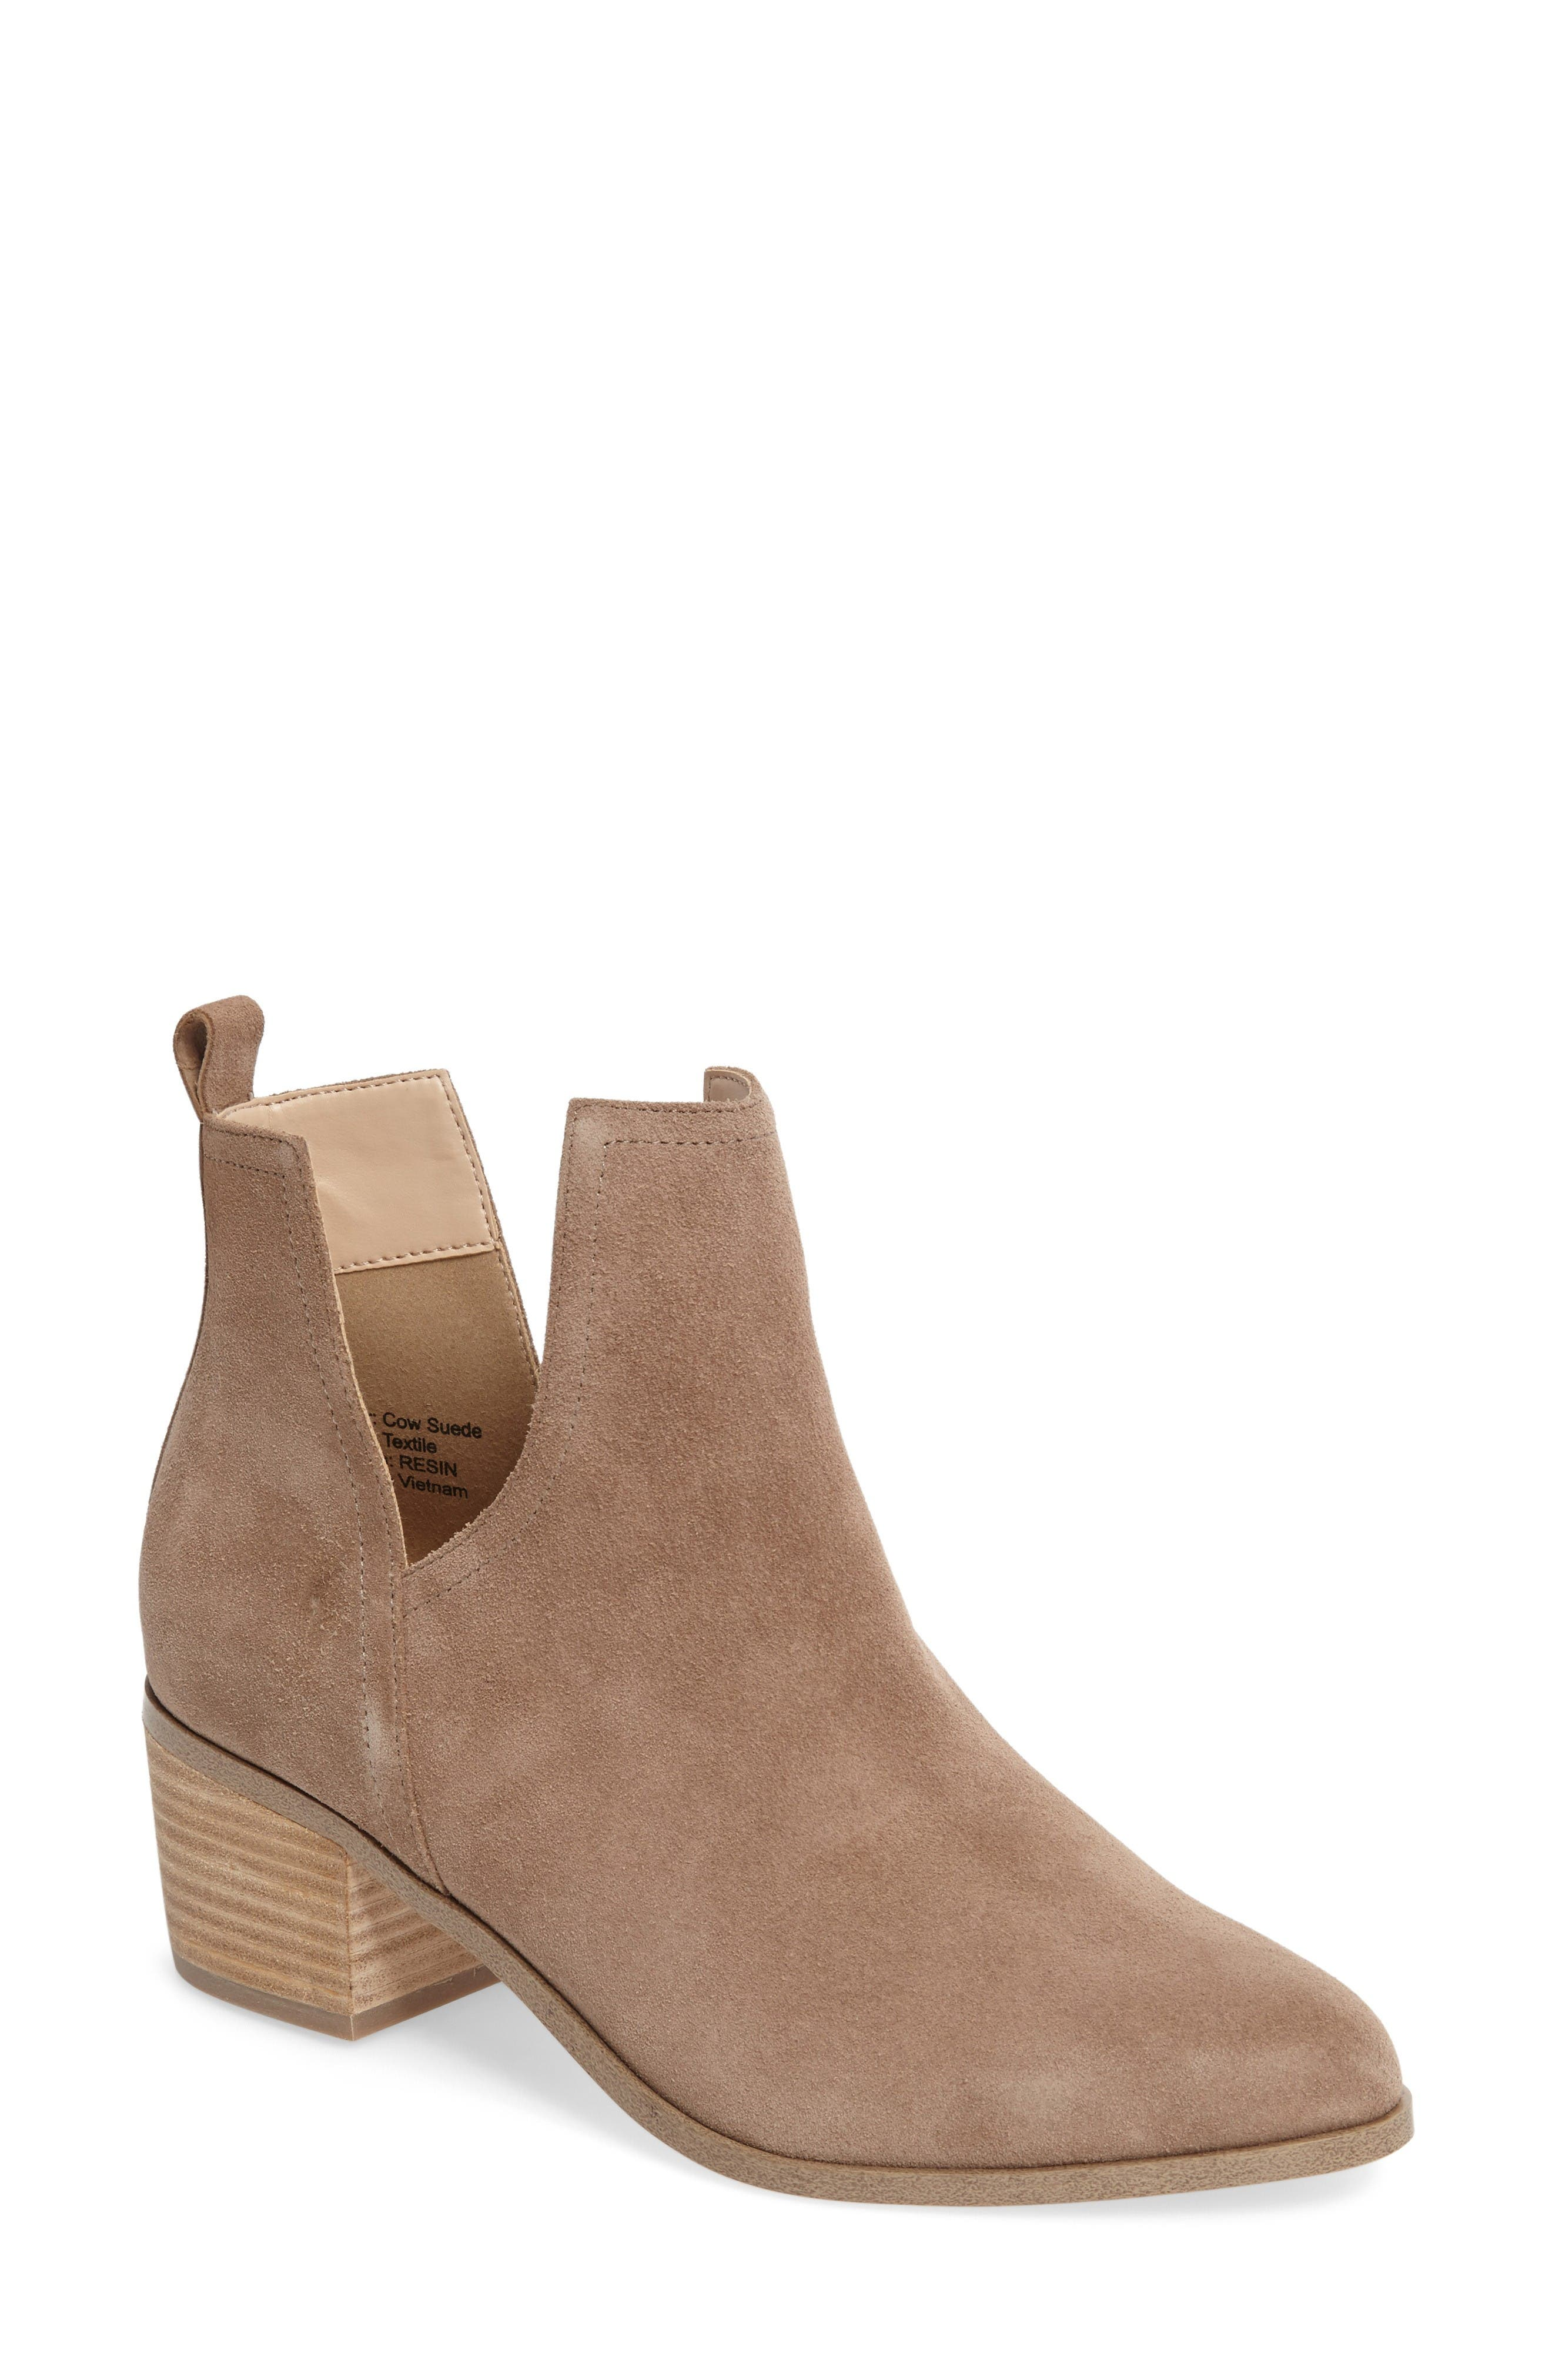 Madrid Bootie,                             Main thumbnail 1, color,                             Sand Suede